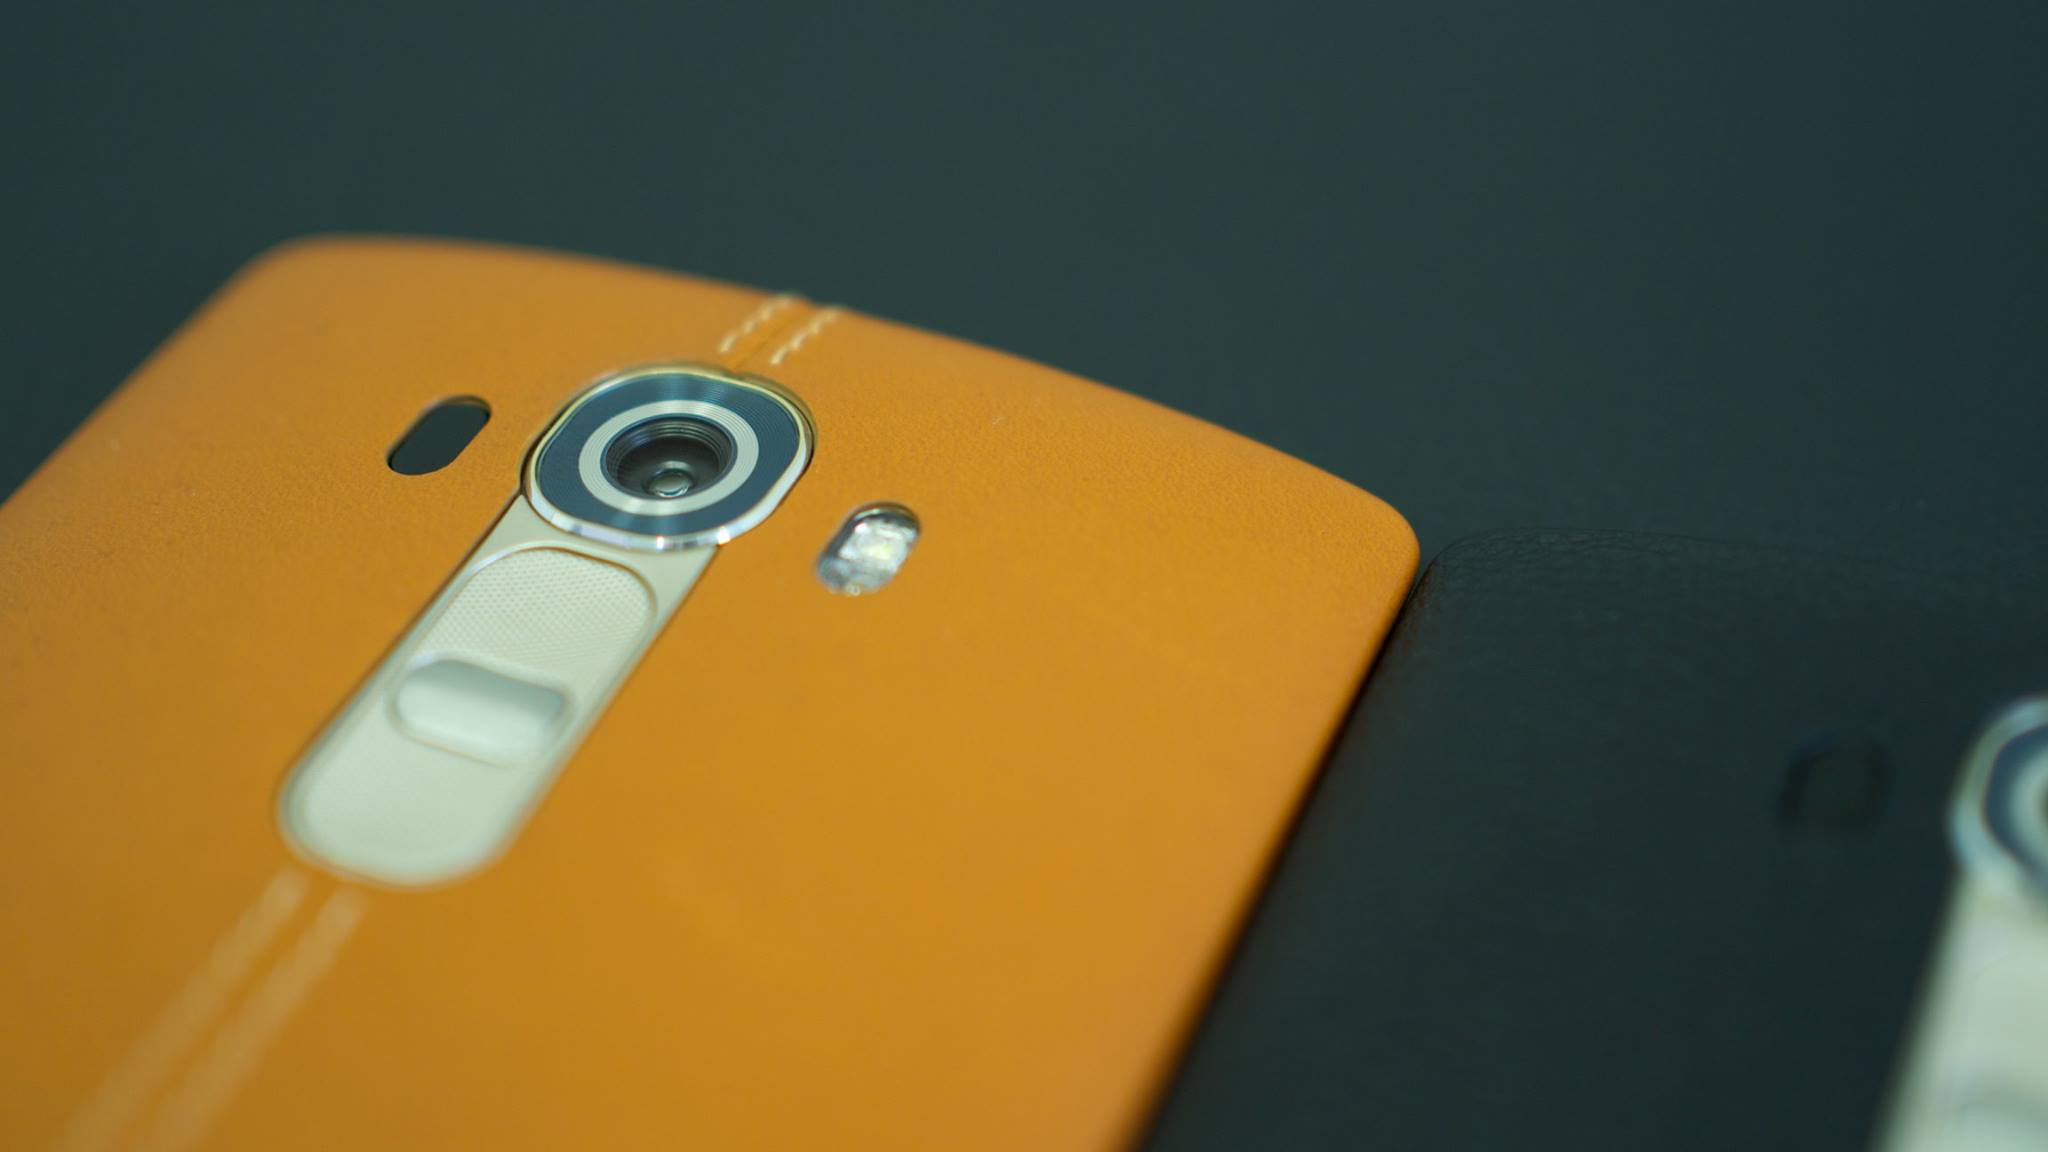 LG-G4-official-images (2)